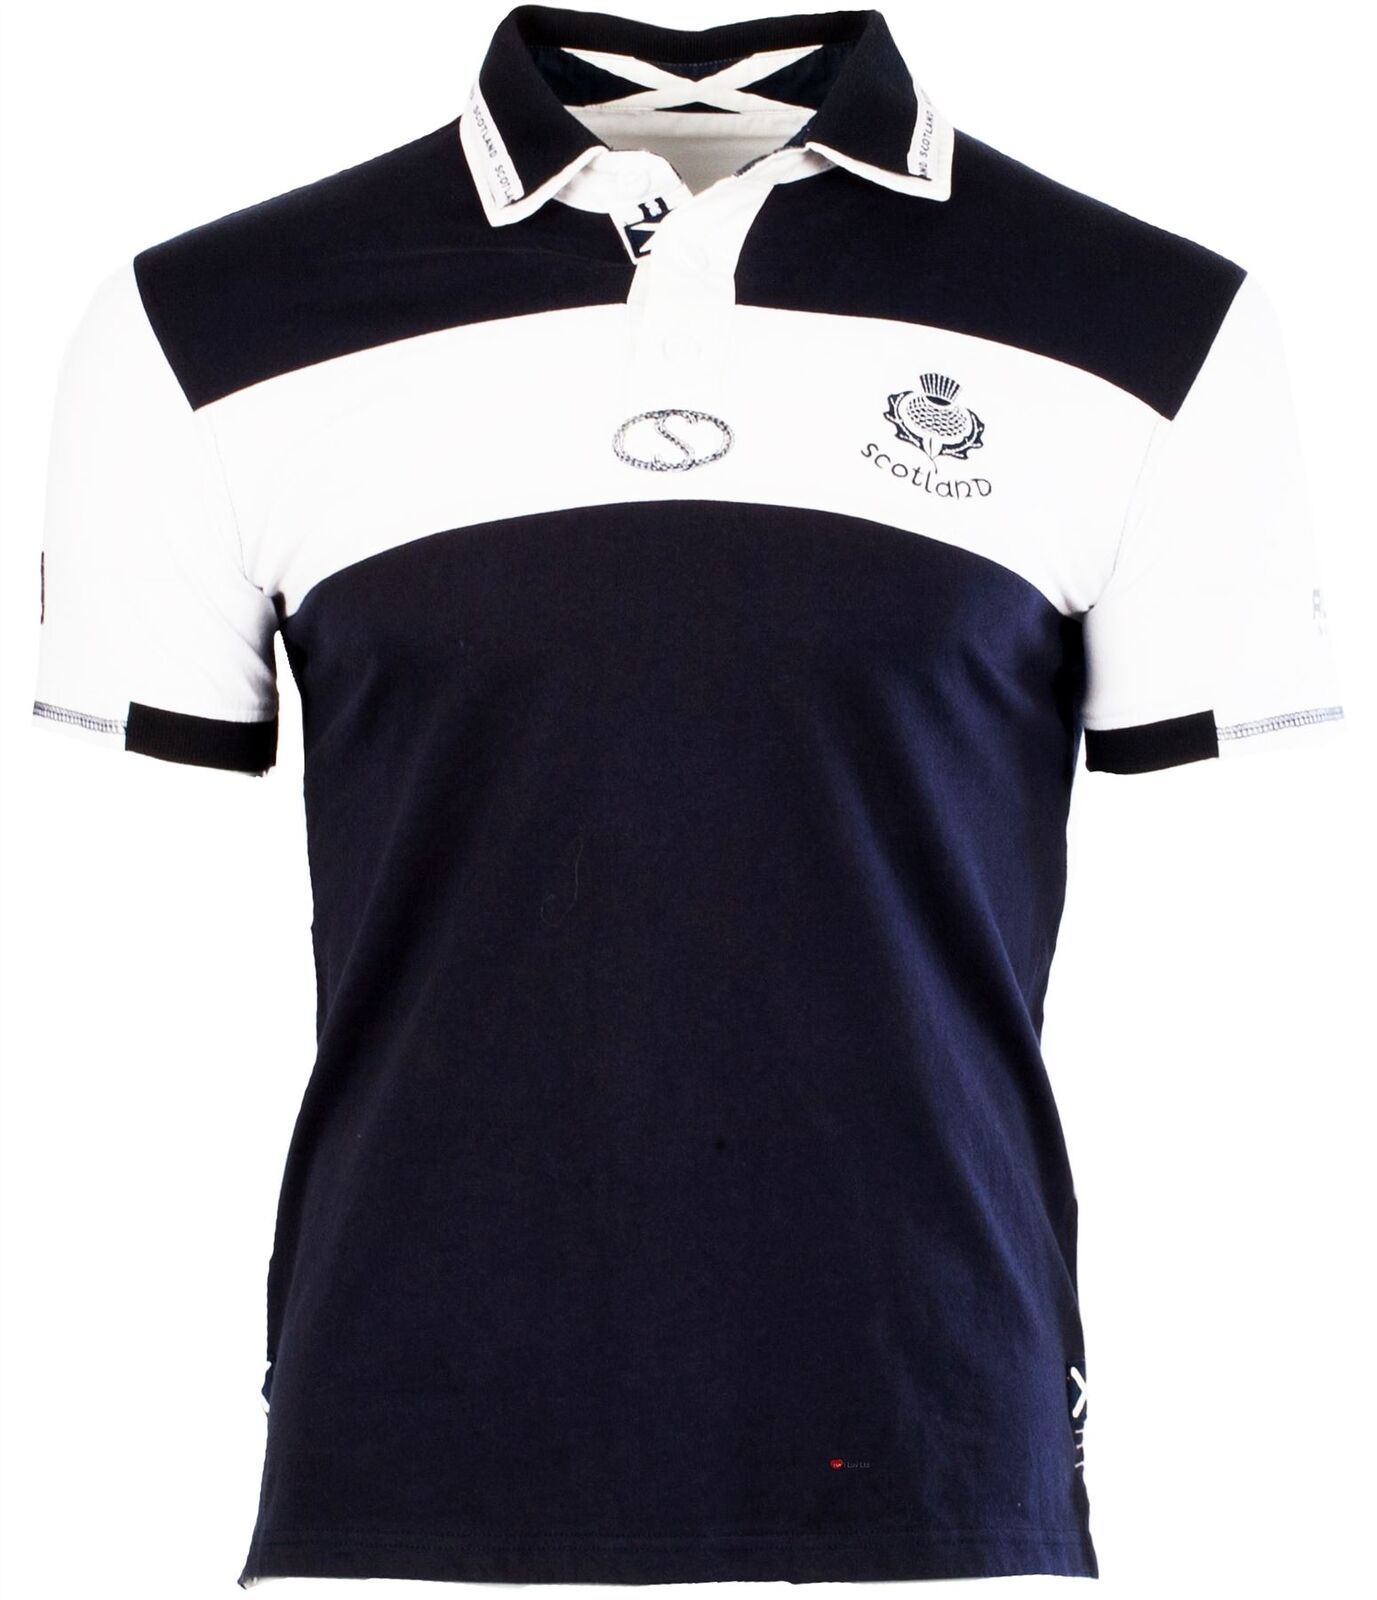 Gents Gents Gents Rugby Shirt Thistle Logo Navy Blau Weiß Scotland Top Mens Adult Small 07cc34